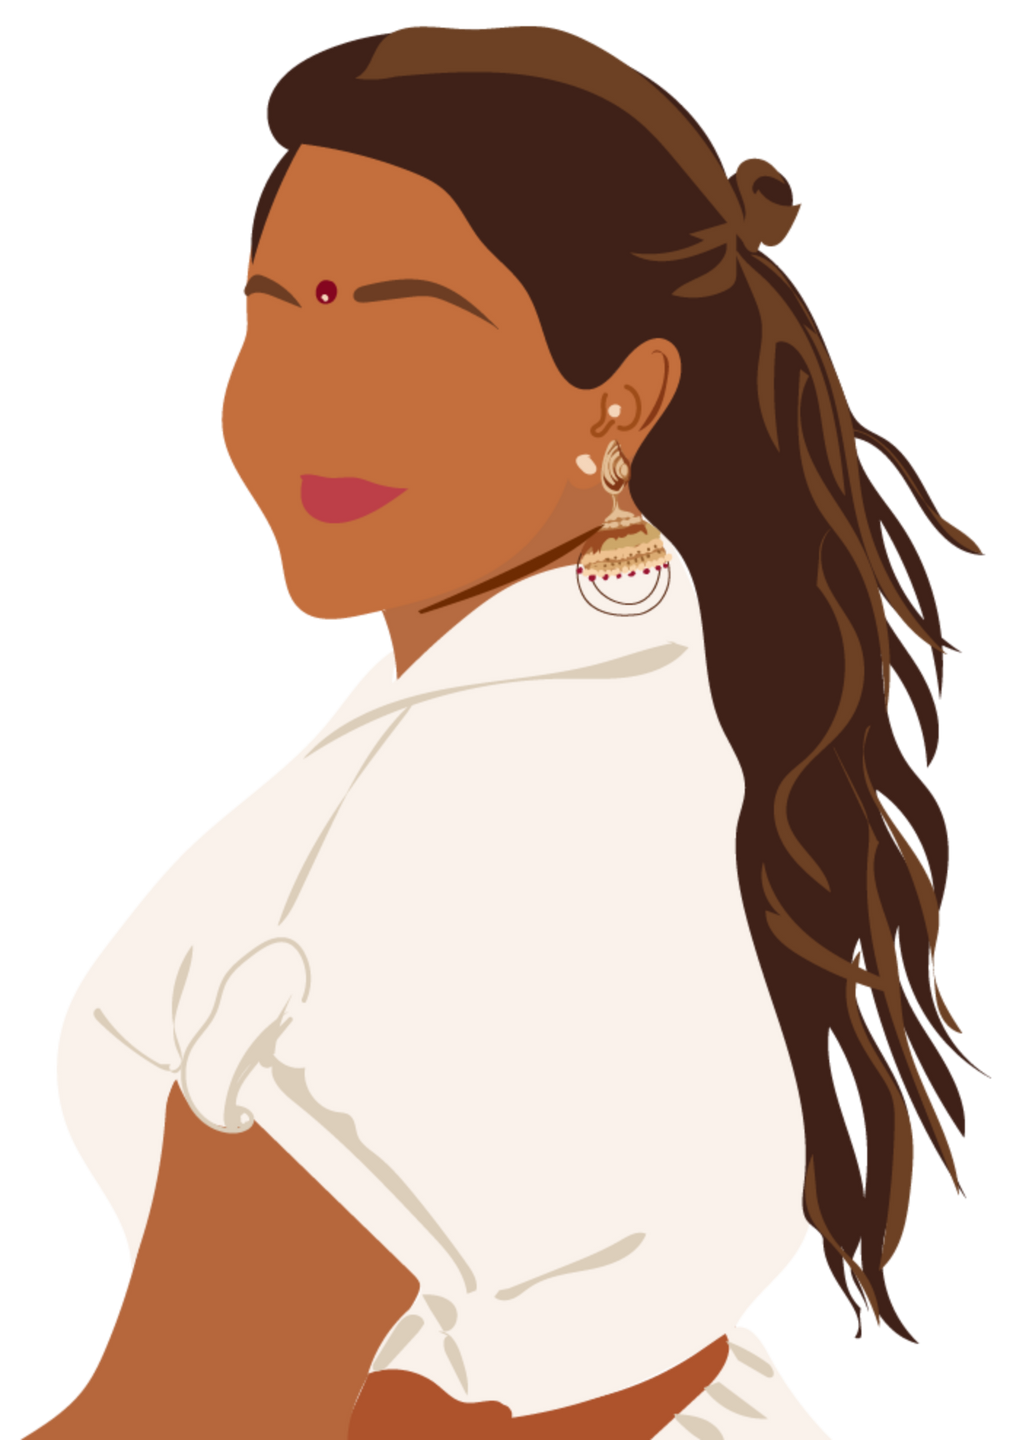 A digitally drawn image of Jenny, a South Asian woman, glancing forward over her shoulder and smiling.